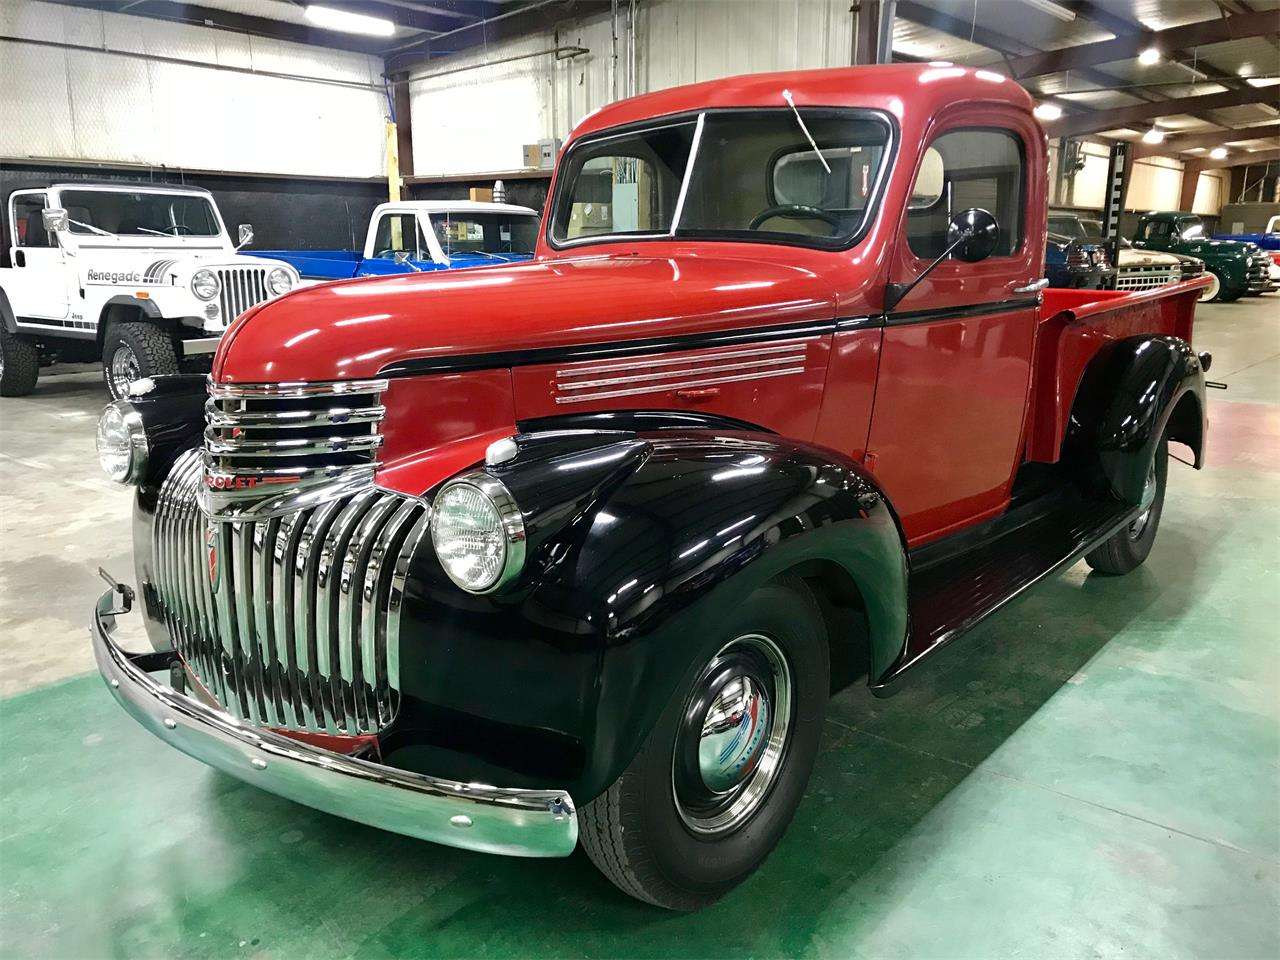 1946 Chevrolet Pickup For Sale Classiccars Com Cc 1097938